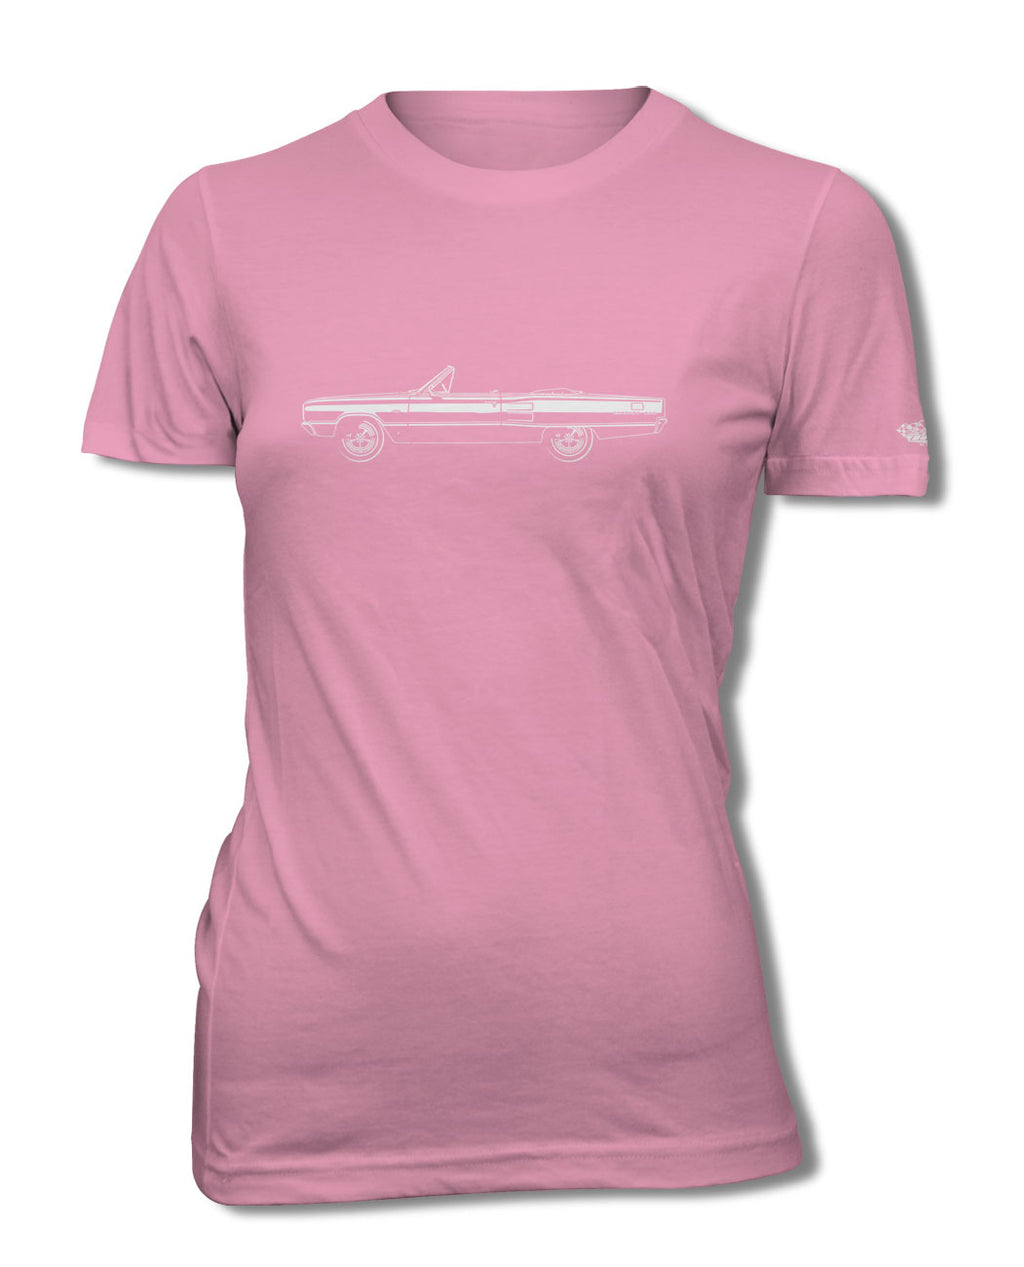 1967 Dodge Coronet 500 Convertible T-Shirt - Women - Side View